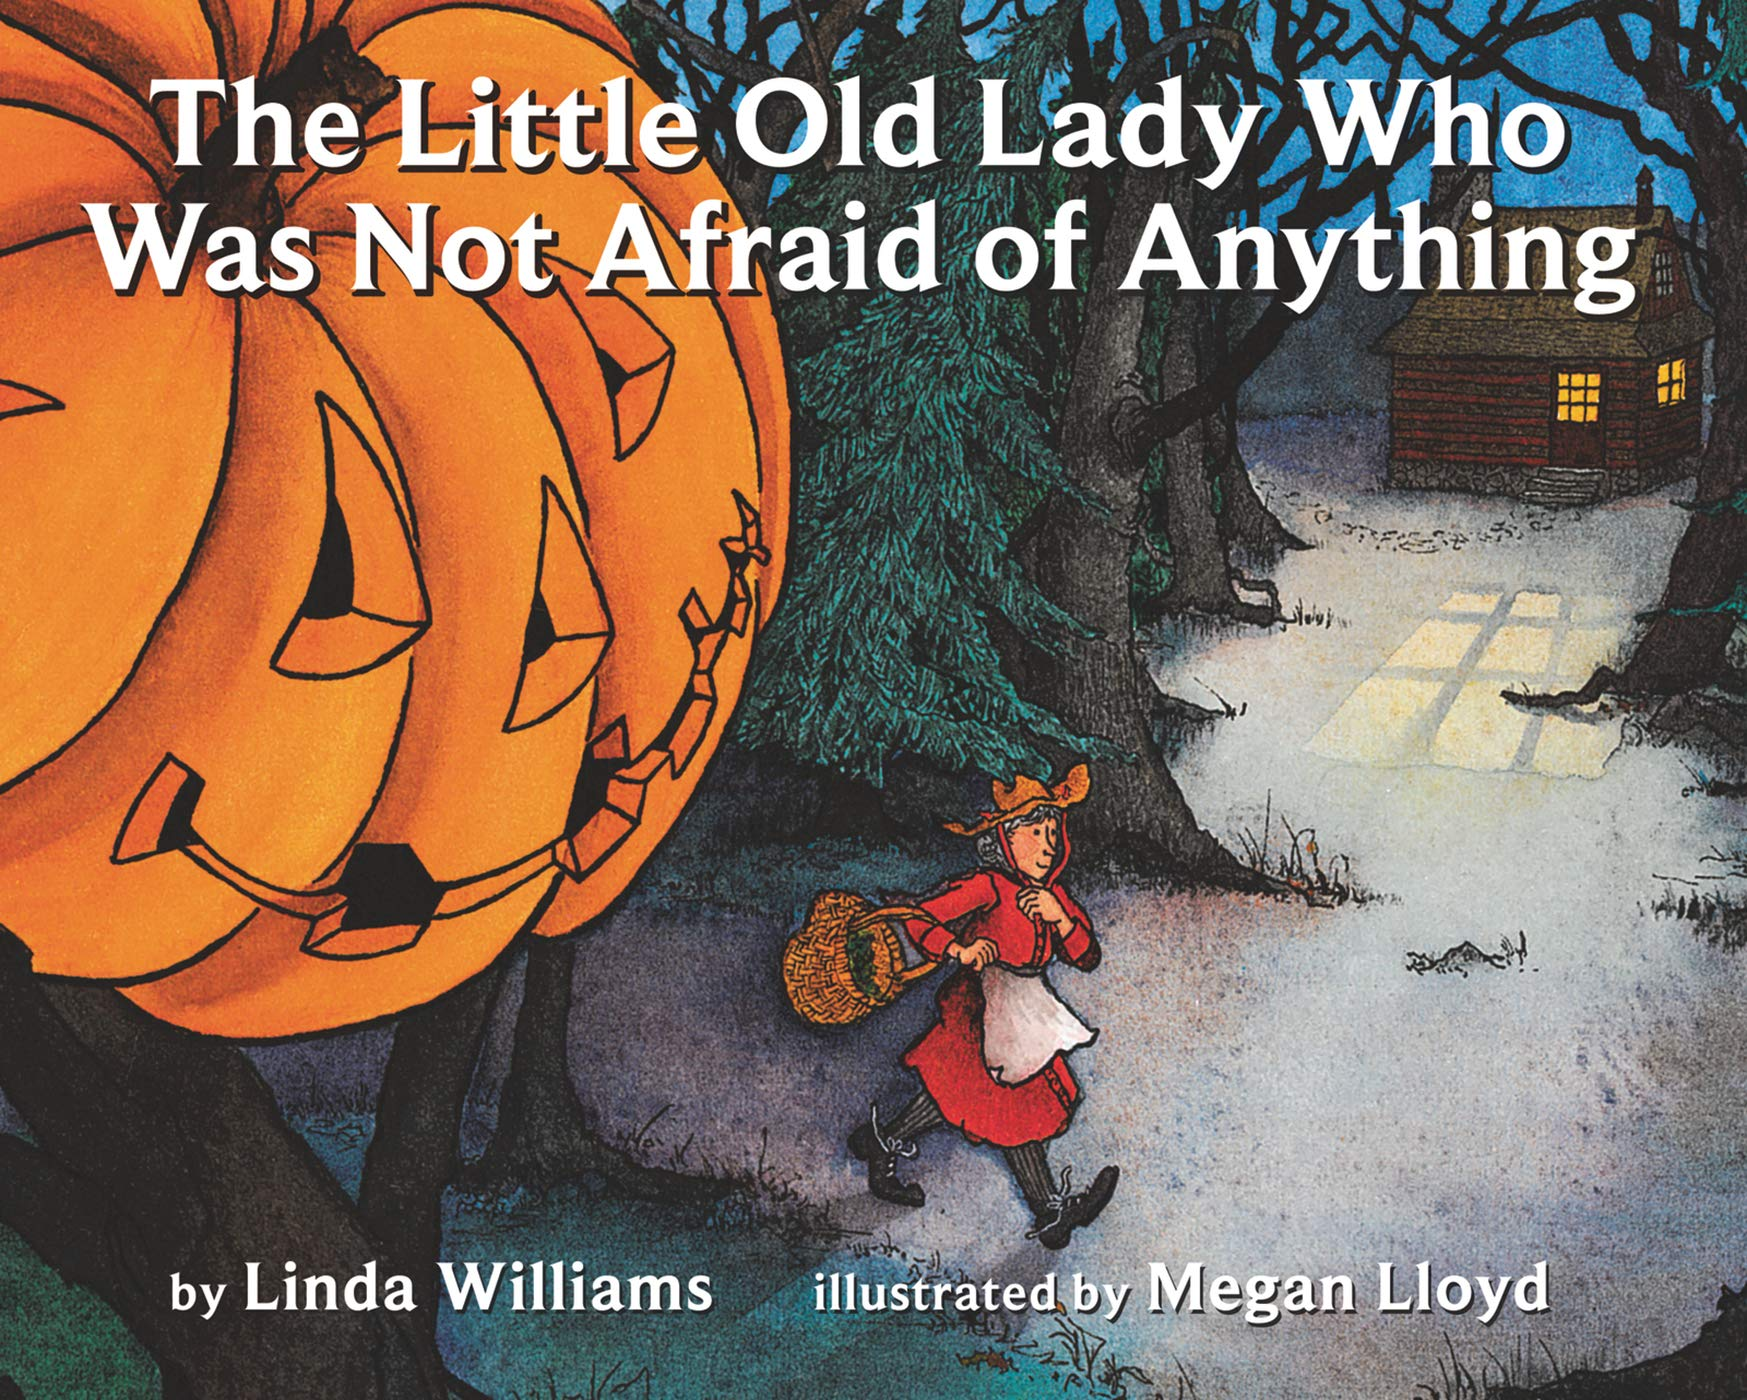 The Little Old Lady Who Was Not Afraid of Anything: Linda D. Williams,  Megan Lloyd: 9780064431835: Amazon.com: Books